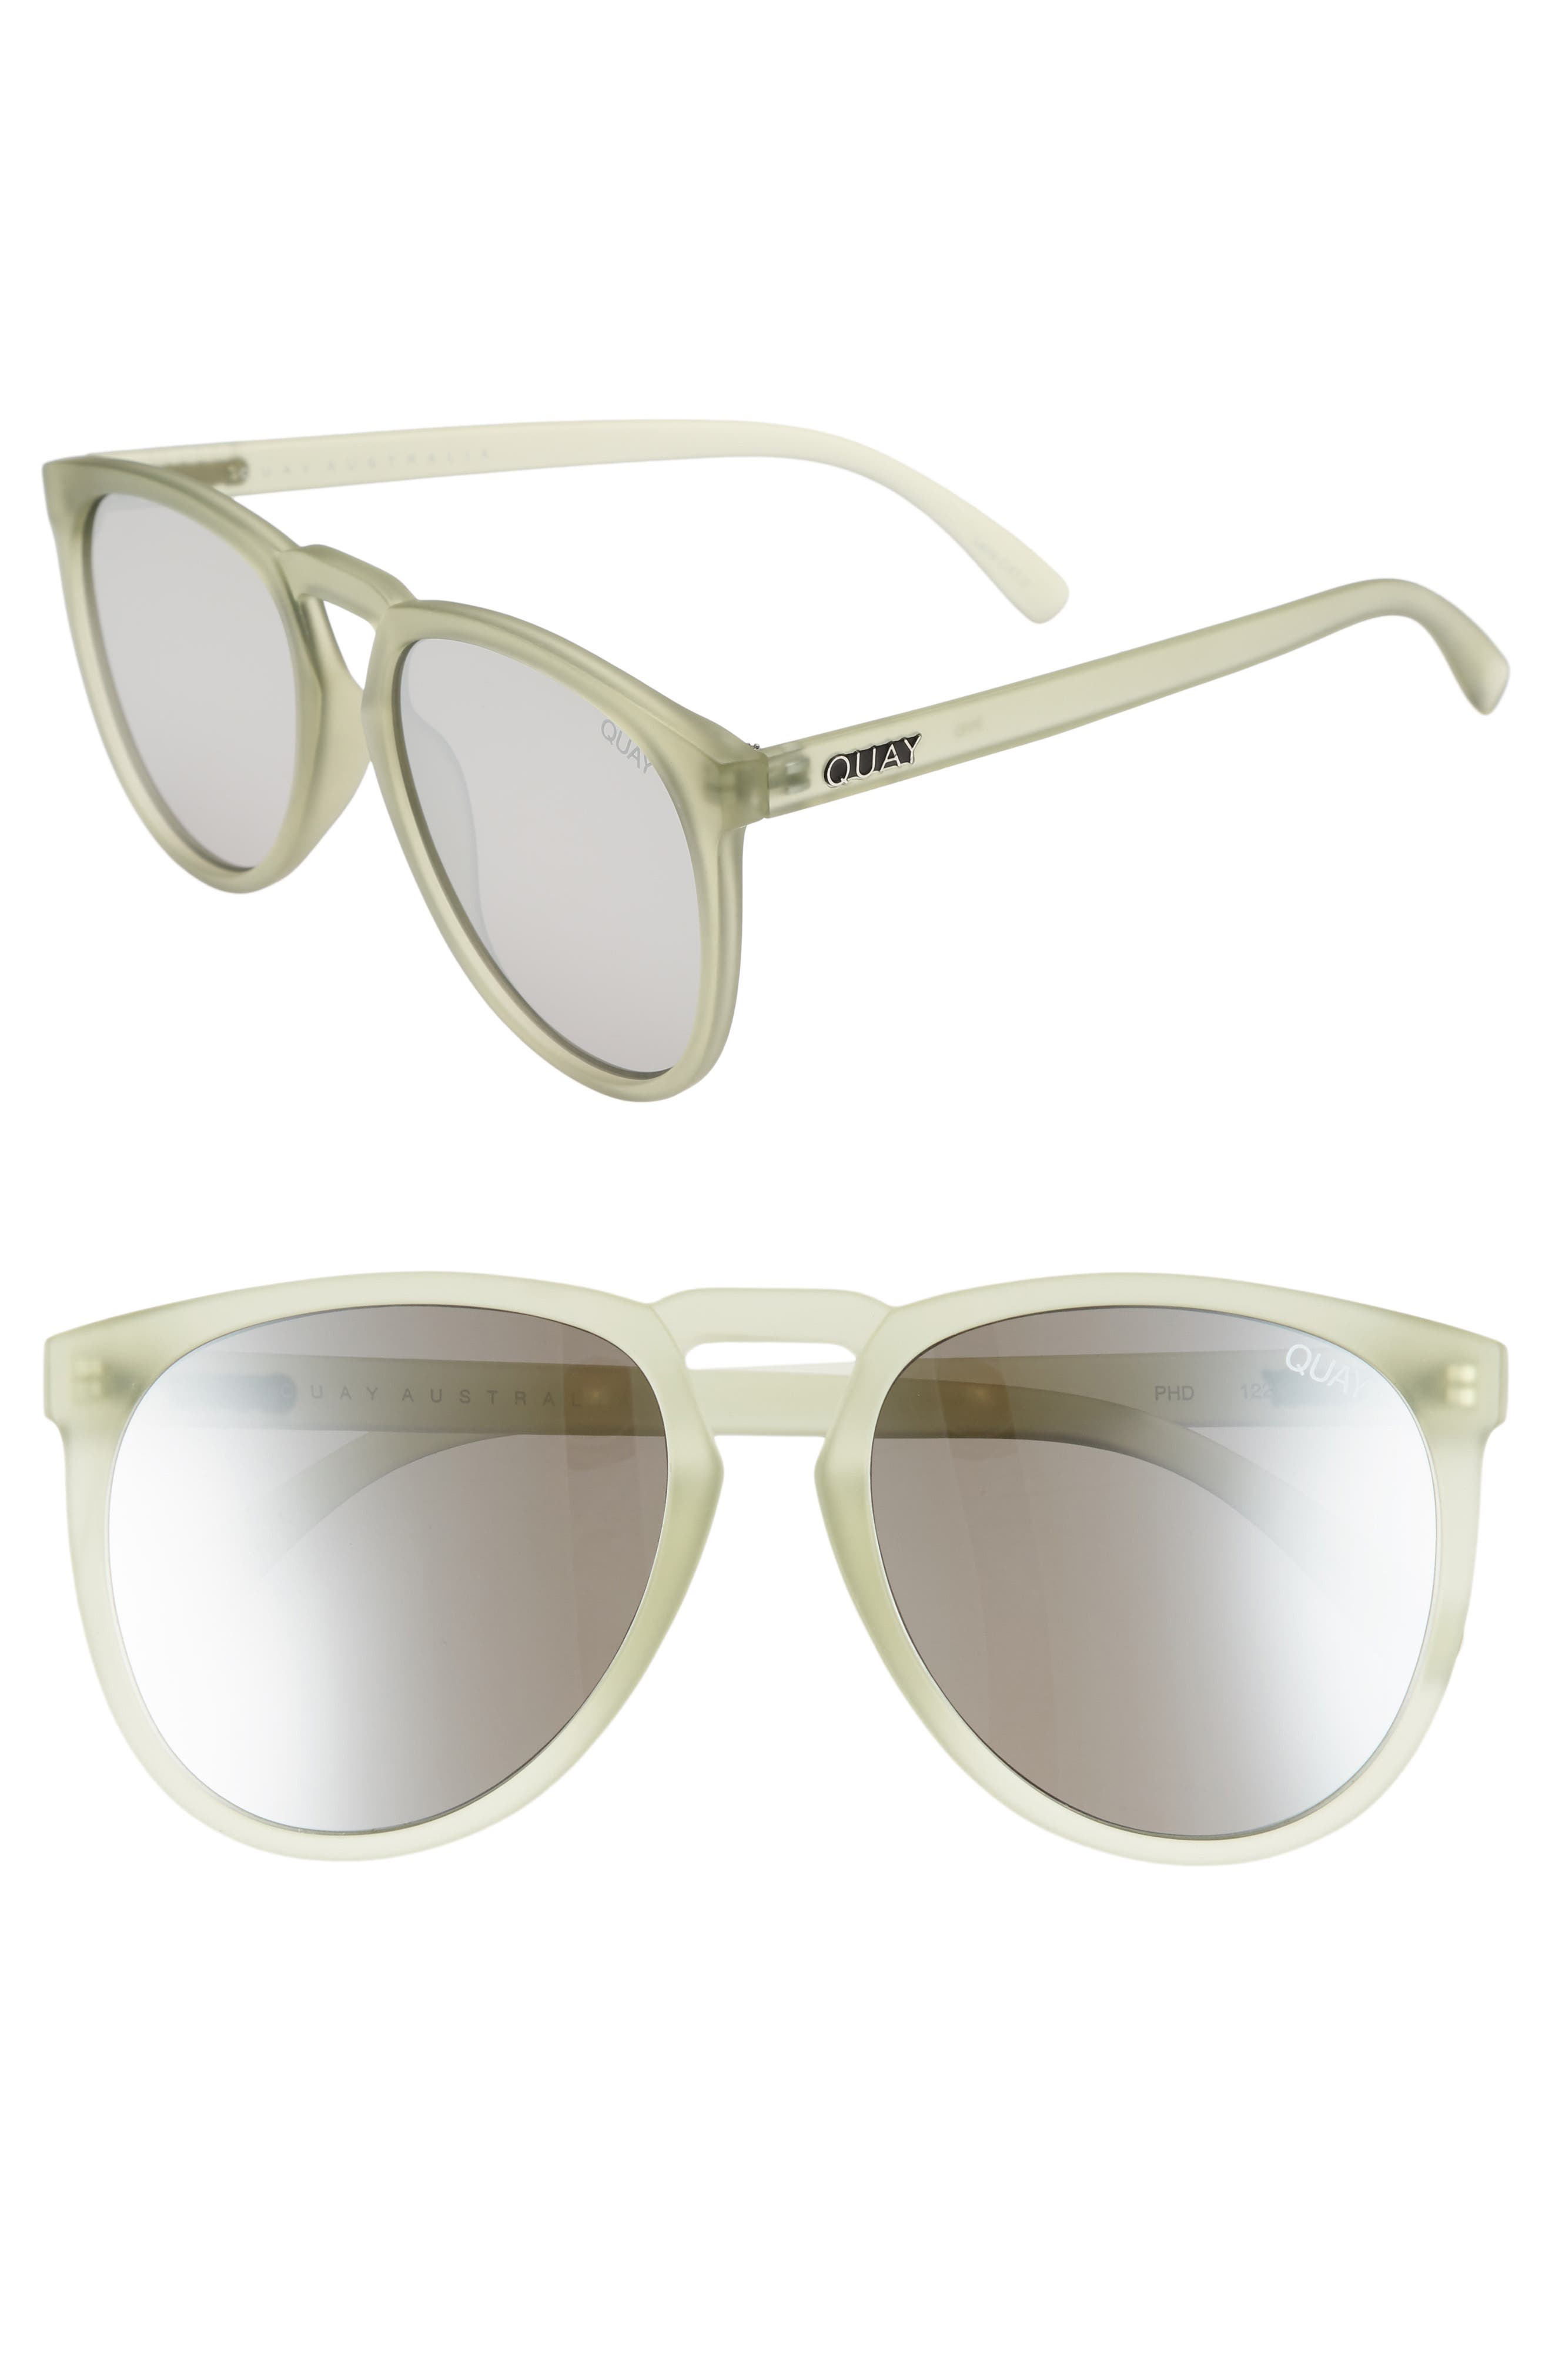 PhD 65mm Sunglasses,                         Main,                         color, OLIVE/ SILVER